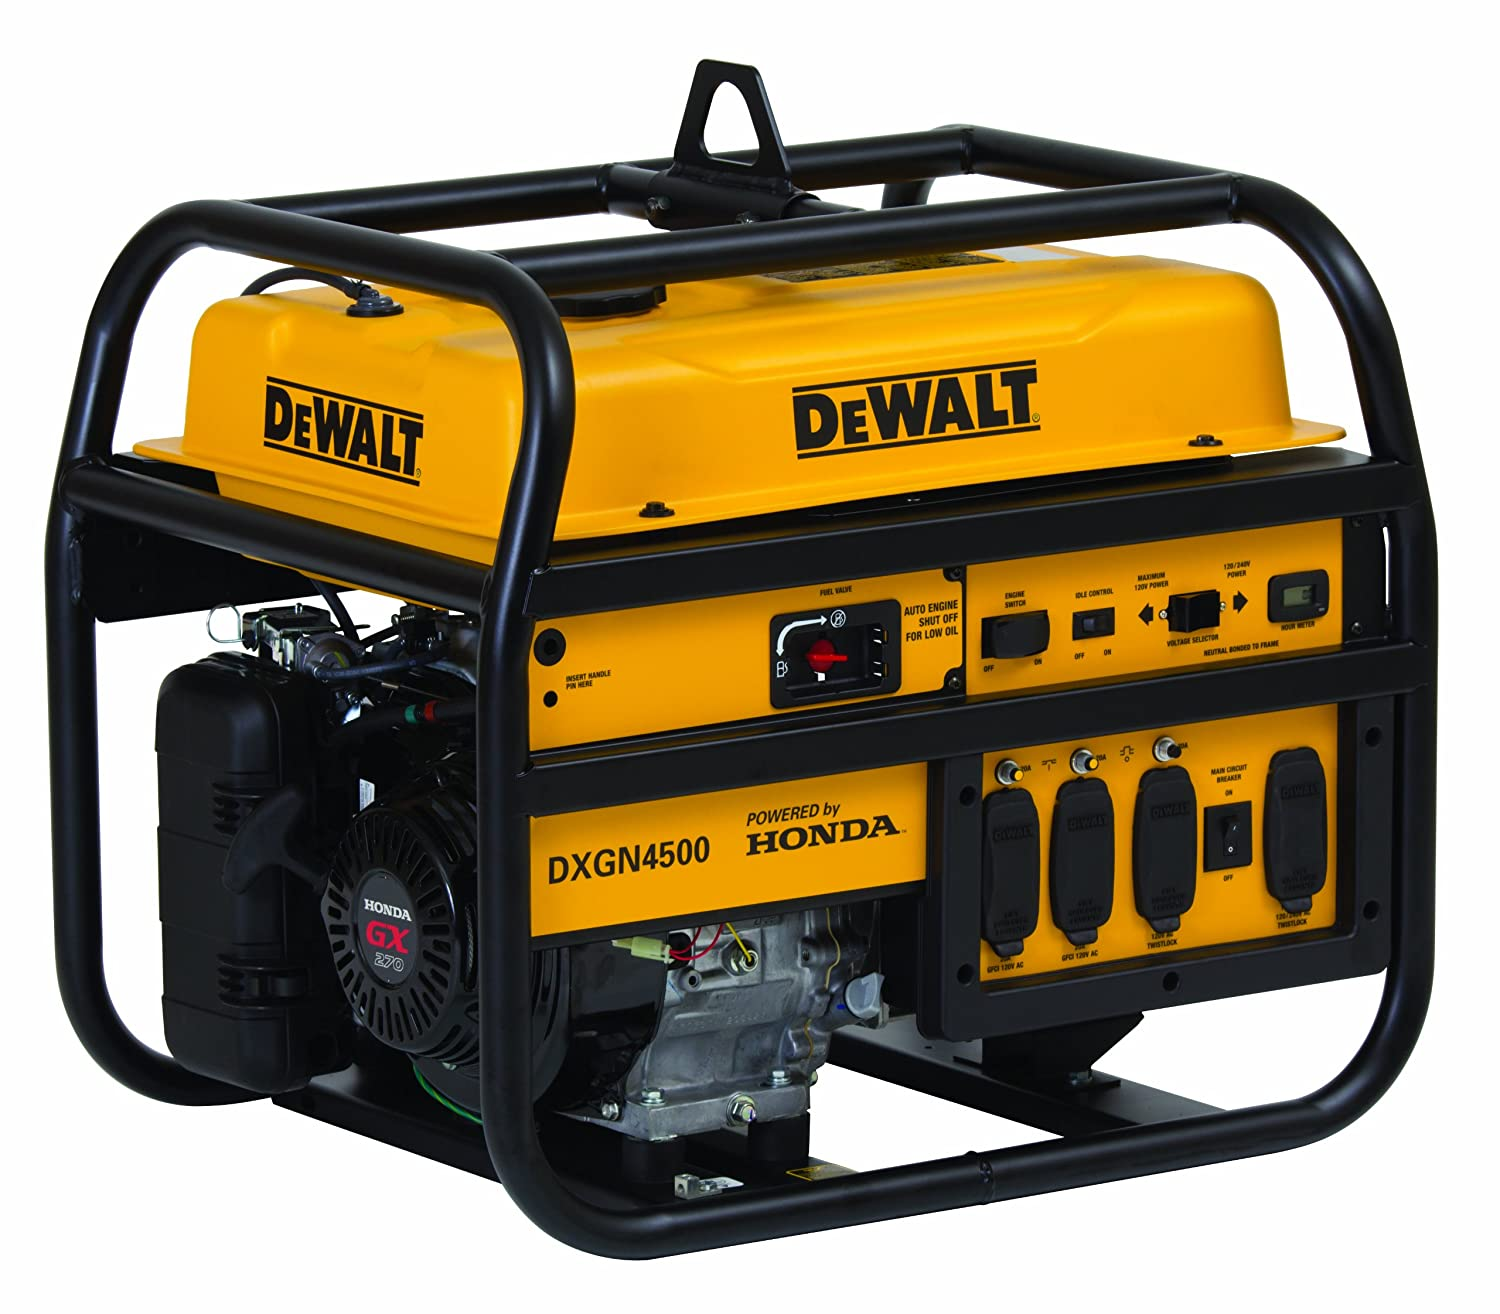 Amazon DeWalt PD422MHI005 4200 Running Watts 4500 Starting